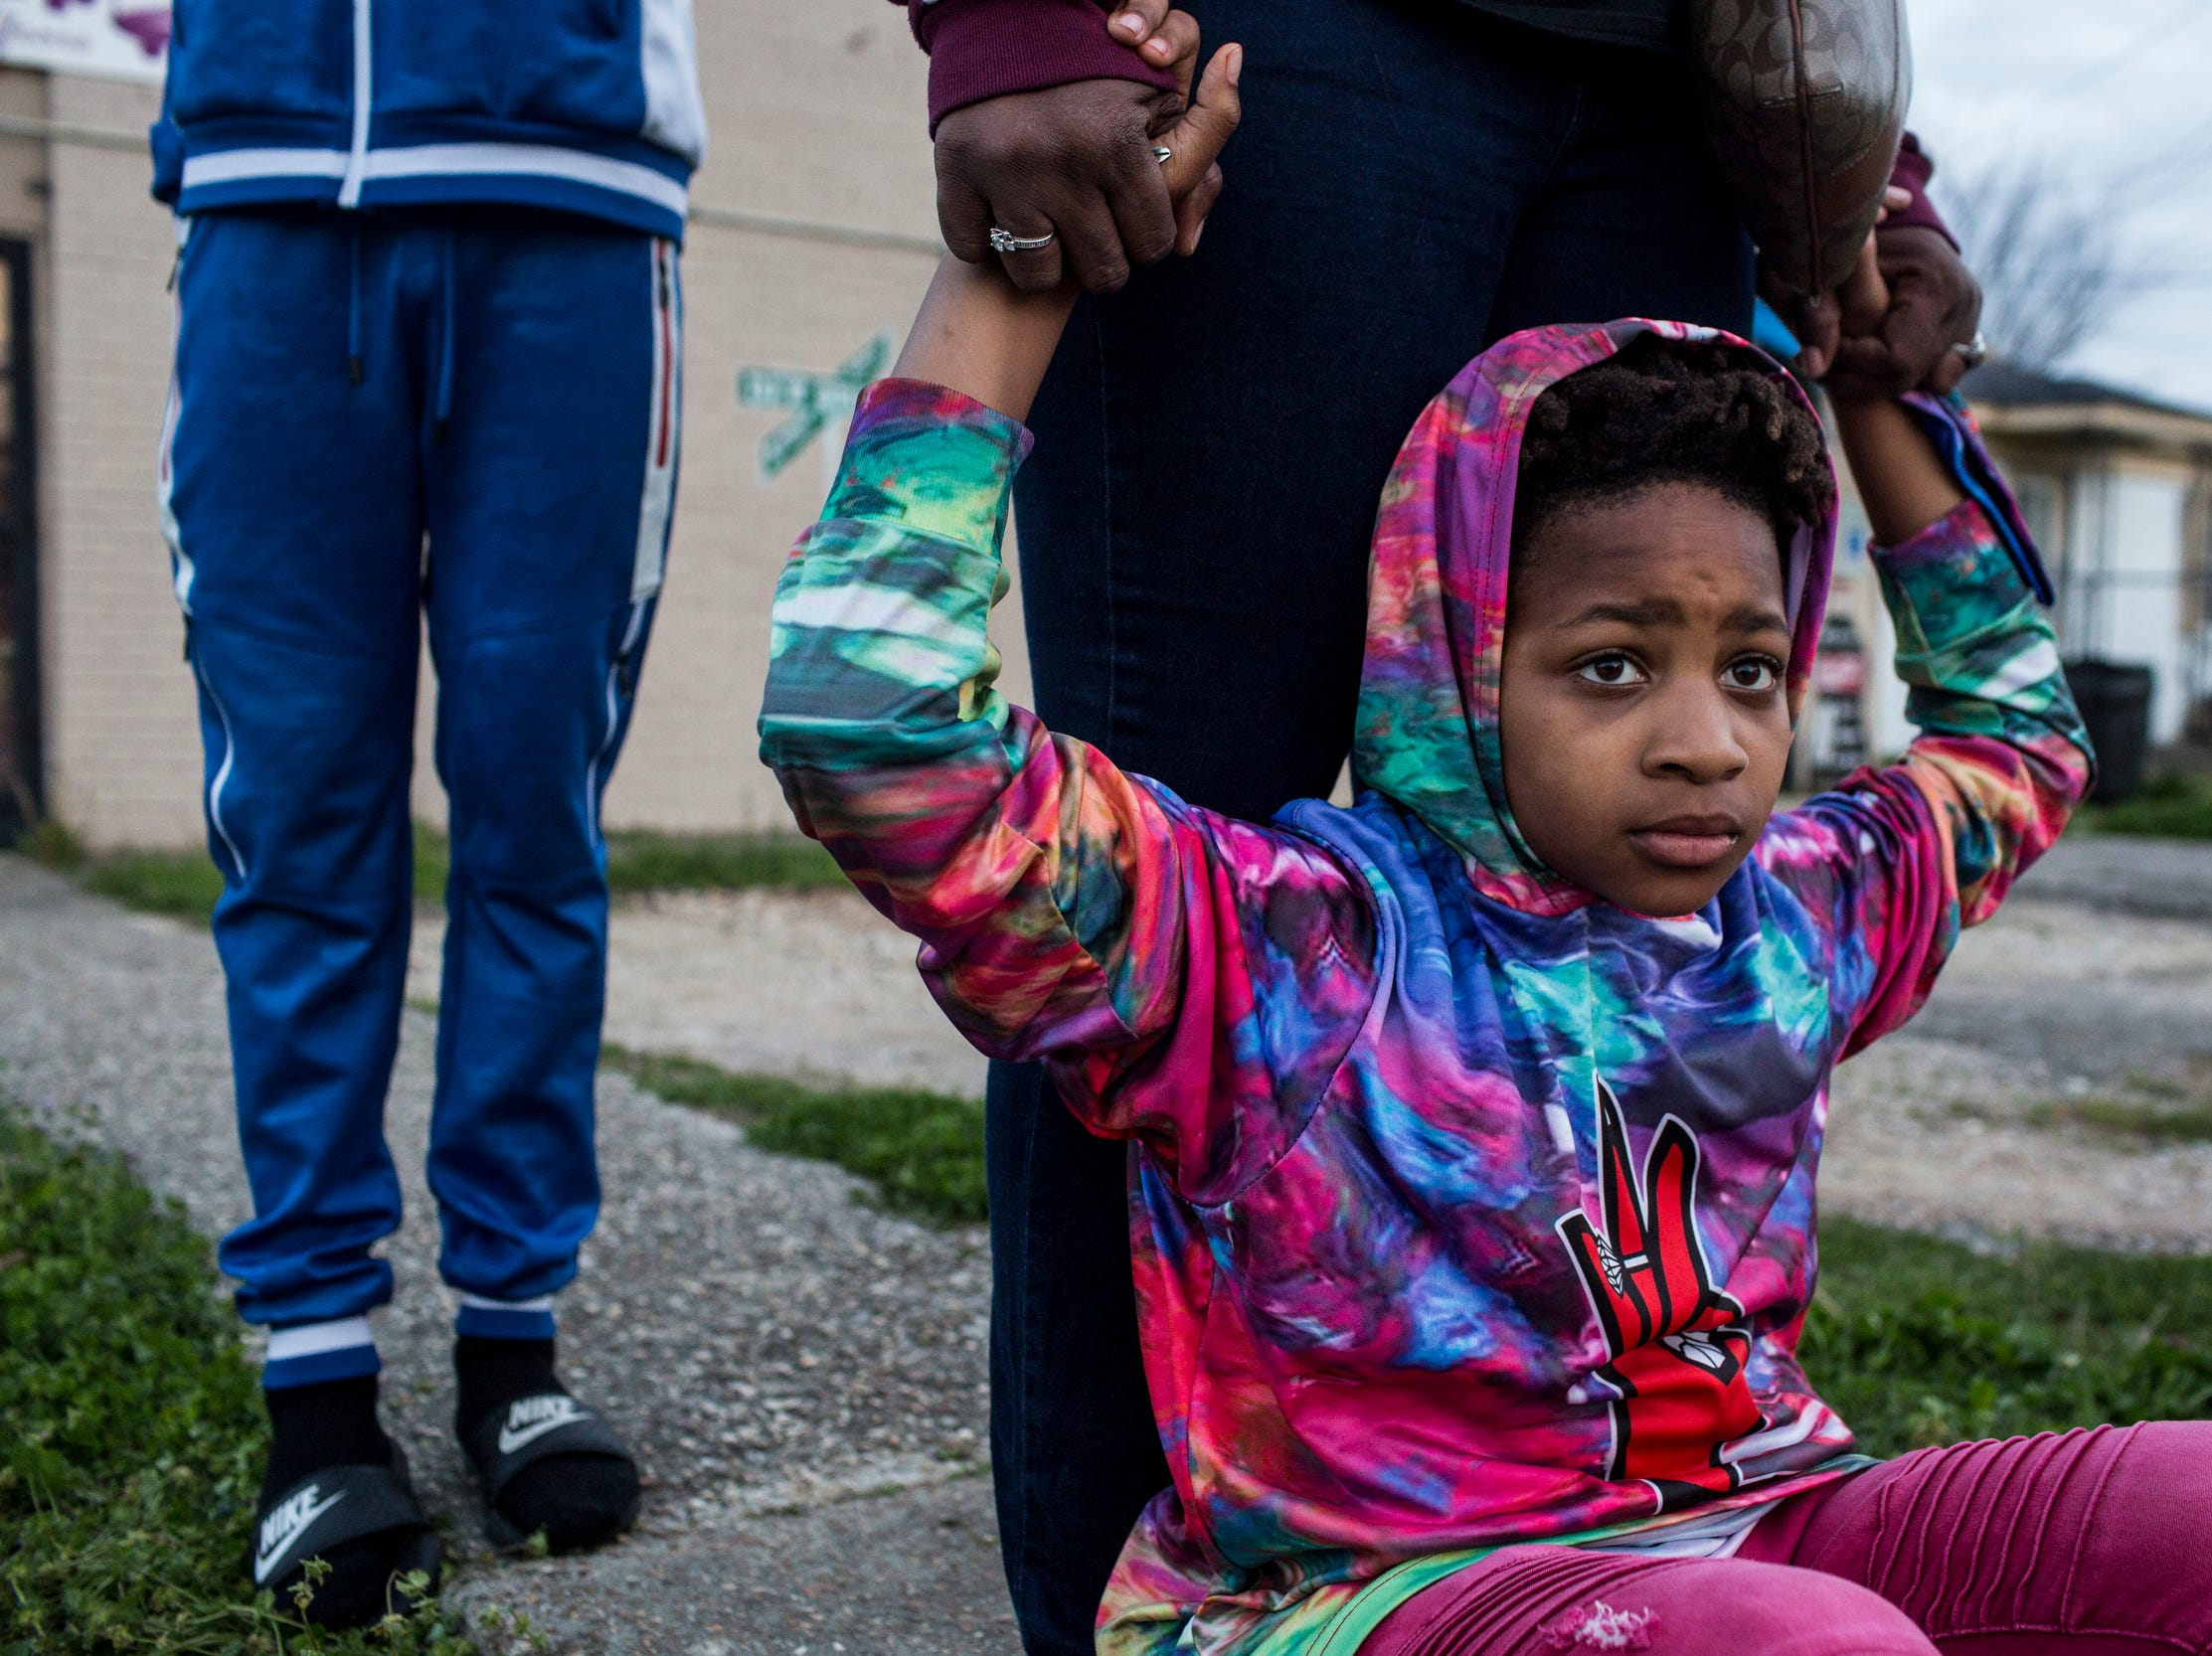 """April 02, 2018 -  Dominique Carpenter grasps onto Kendarius Carpenter, 10, her son, while watching neighbors who had gathered near Top Stop Shop in North Memphis. A clerk is accused of fatally shooting 17-year-old Dorian Harris after he stole a beer from the shop. """"It's just really disheartening,"""" Carpenter said. """"Stealing is wrong, yes. Should he be punished? Yes. But it didn't warrant death. That's why I'm out here."""""""